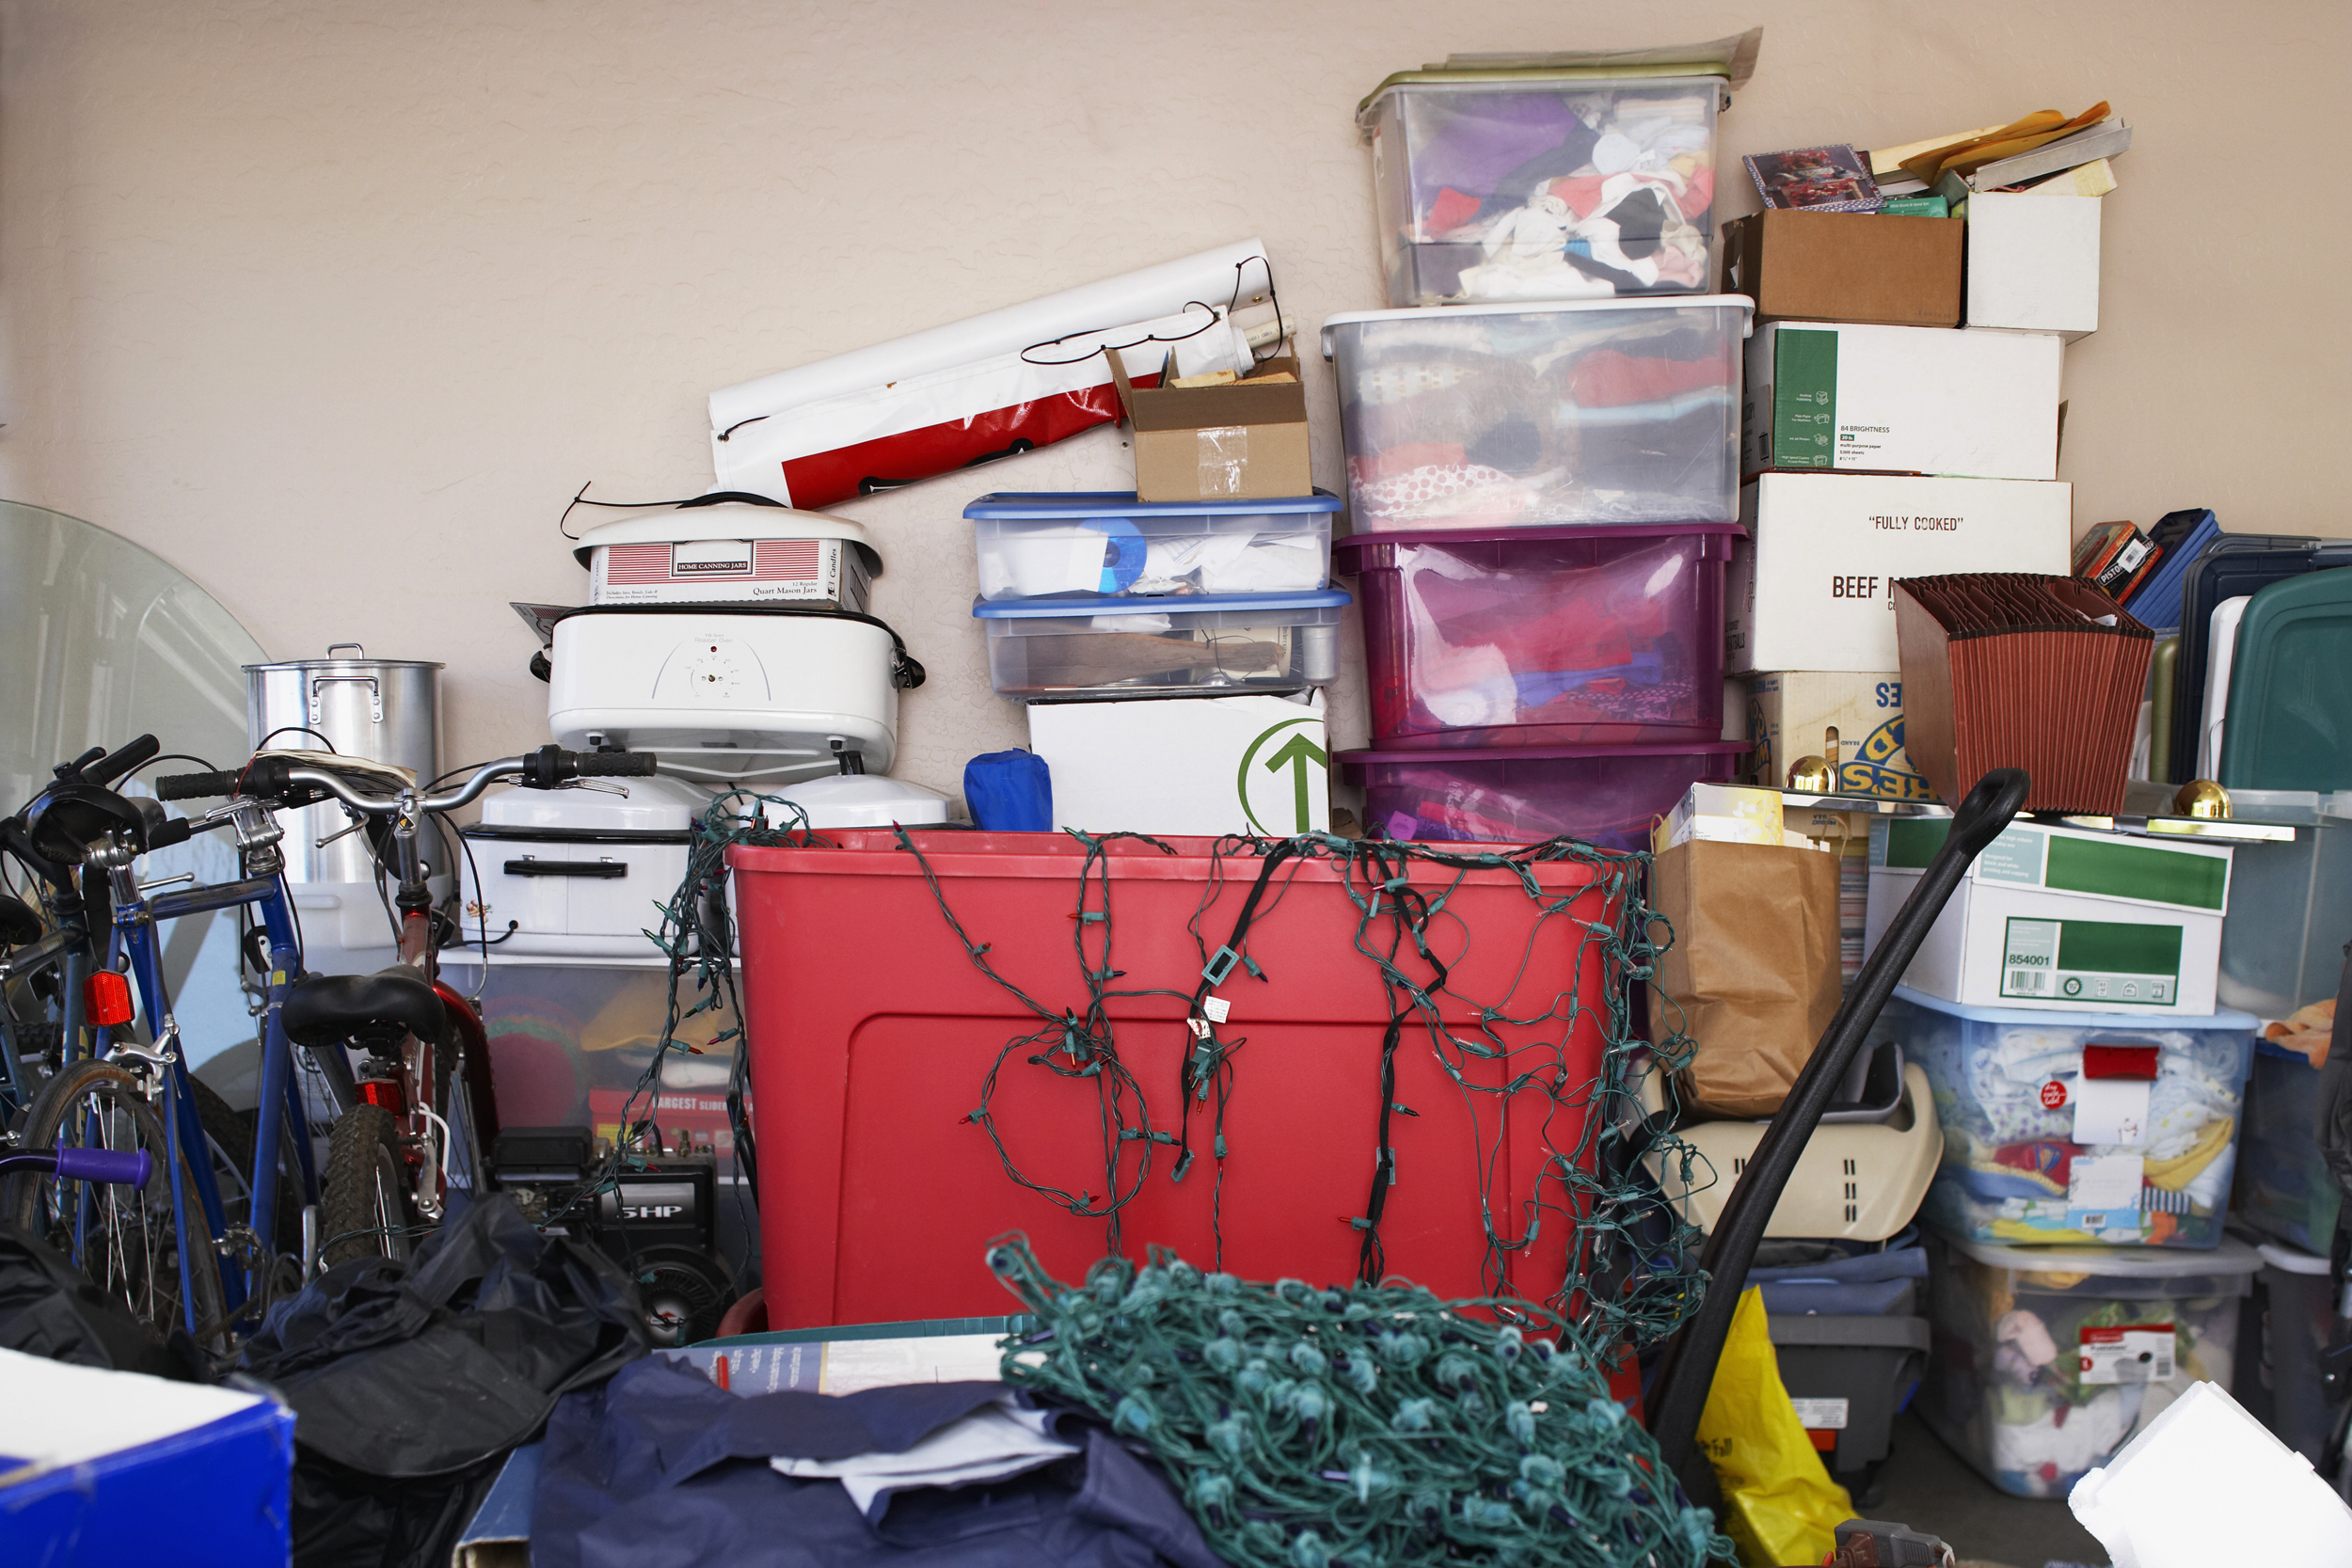 Image: Items stored in a garage